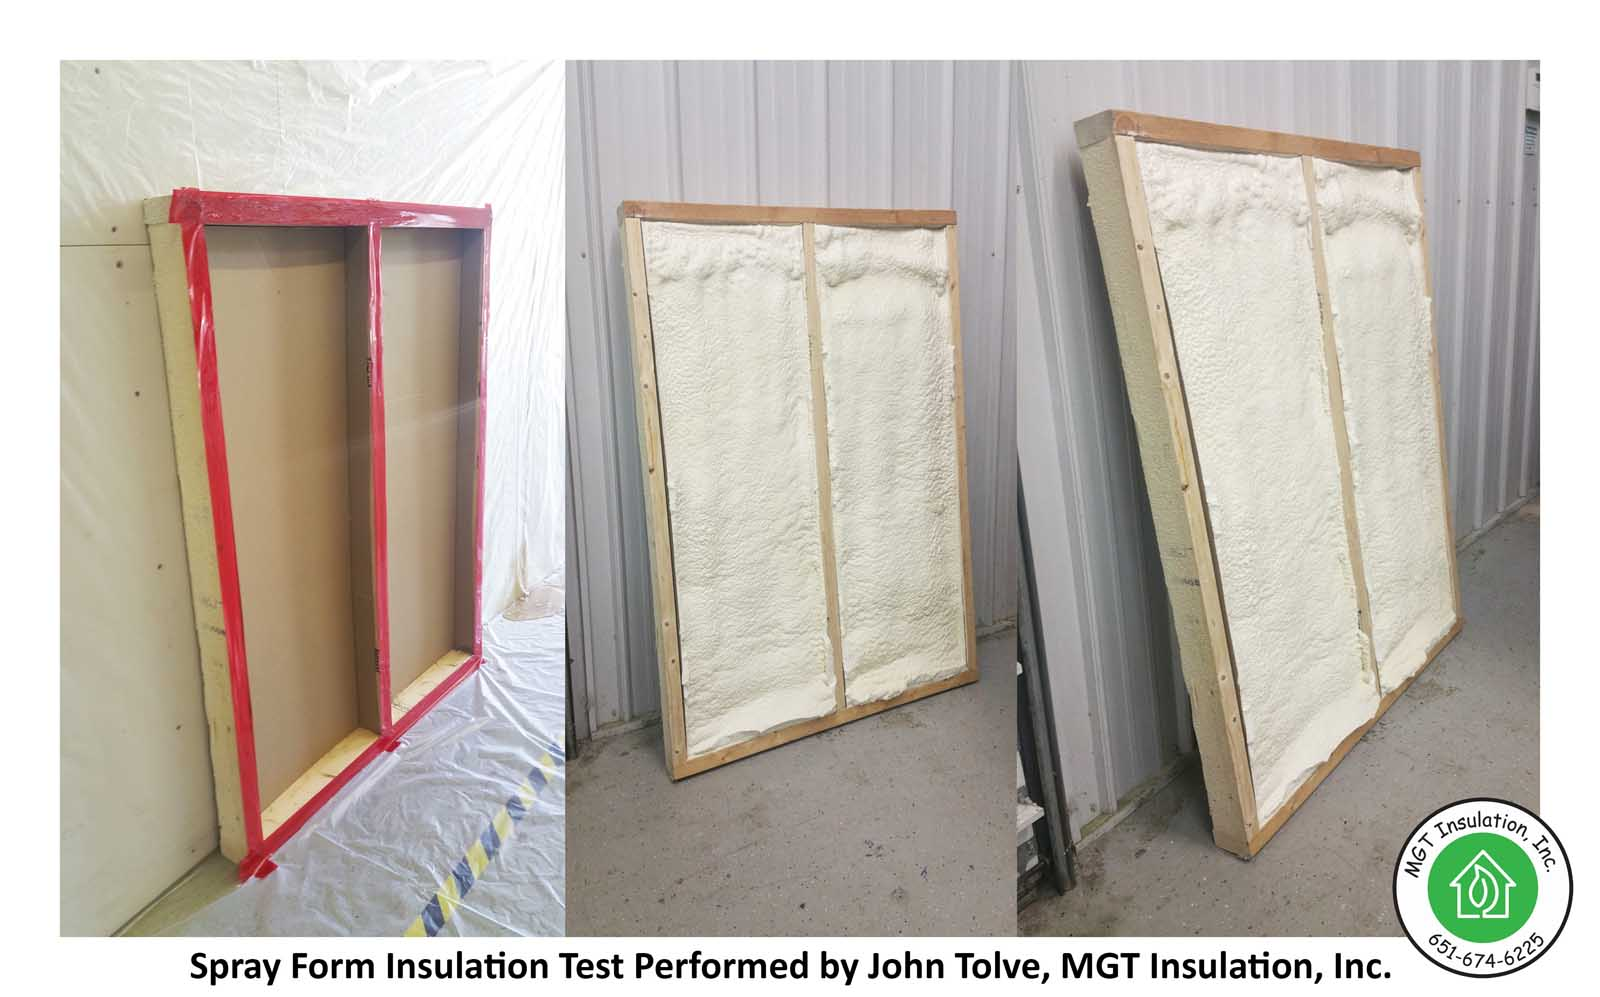 Insulation Services Page, Gallery, Spray Foam Insulation Installation Test on Sidewall cavities, MGT Insulation, Inc